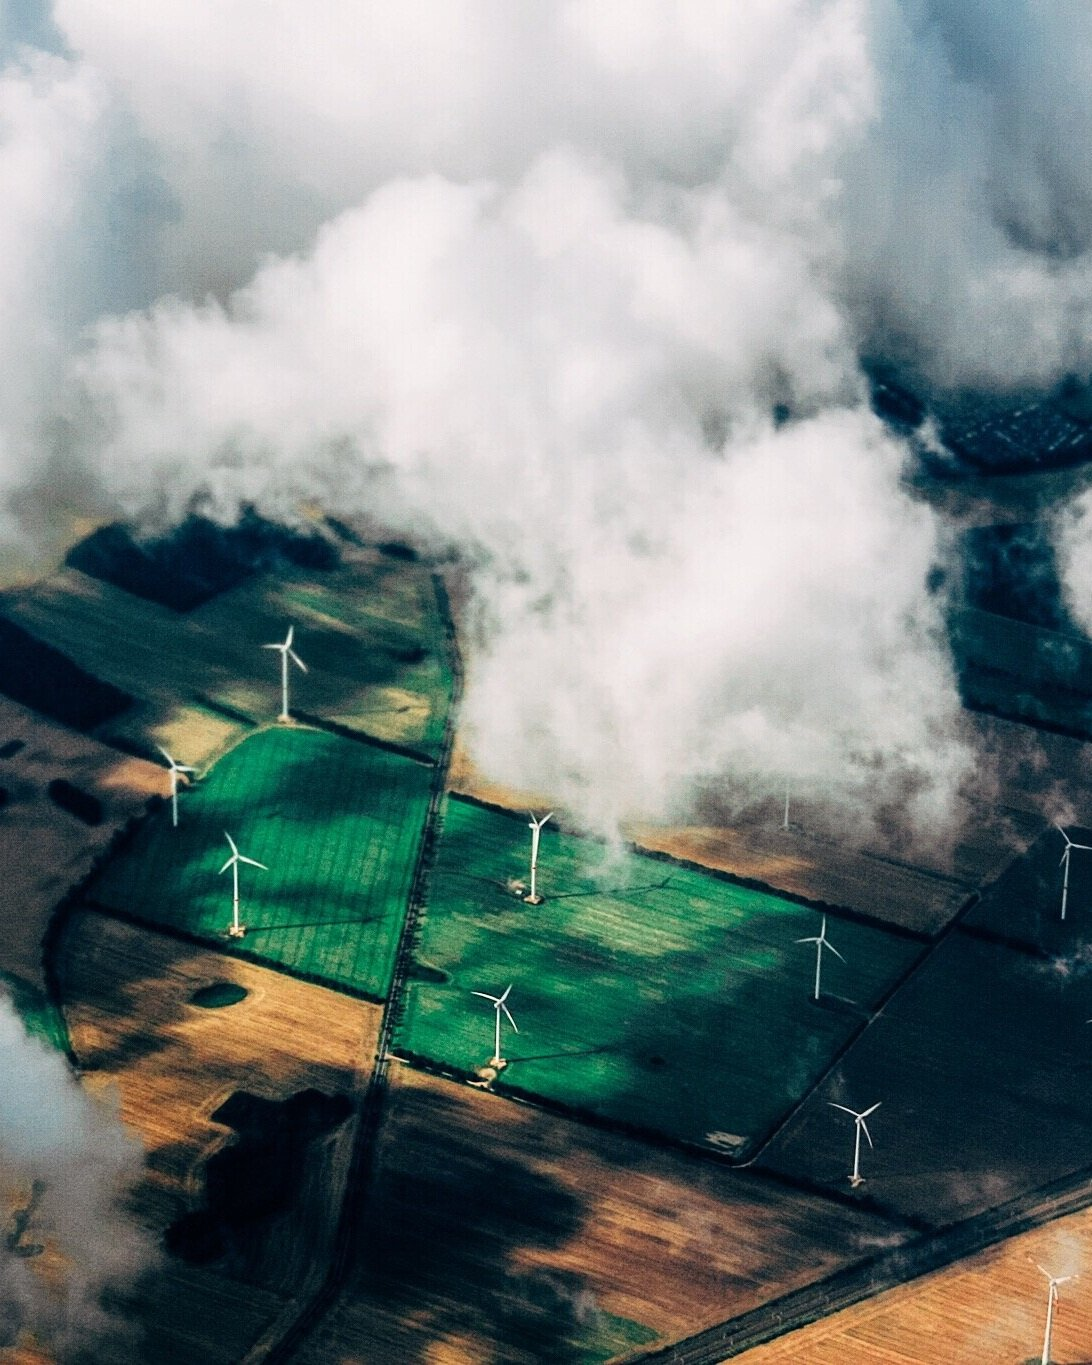 WakeBlaster - Faster than real-time wind farm flow simulation, for optimised operational control. WakeBlaster delivers cost effective, faster than real-time, yet accurate modelling of even the largest wind farms.